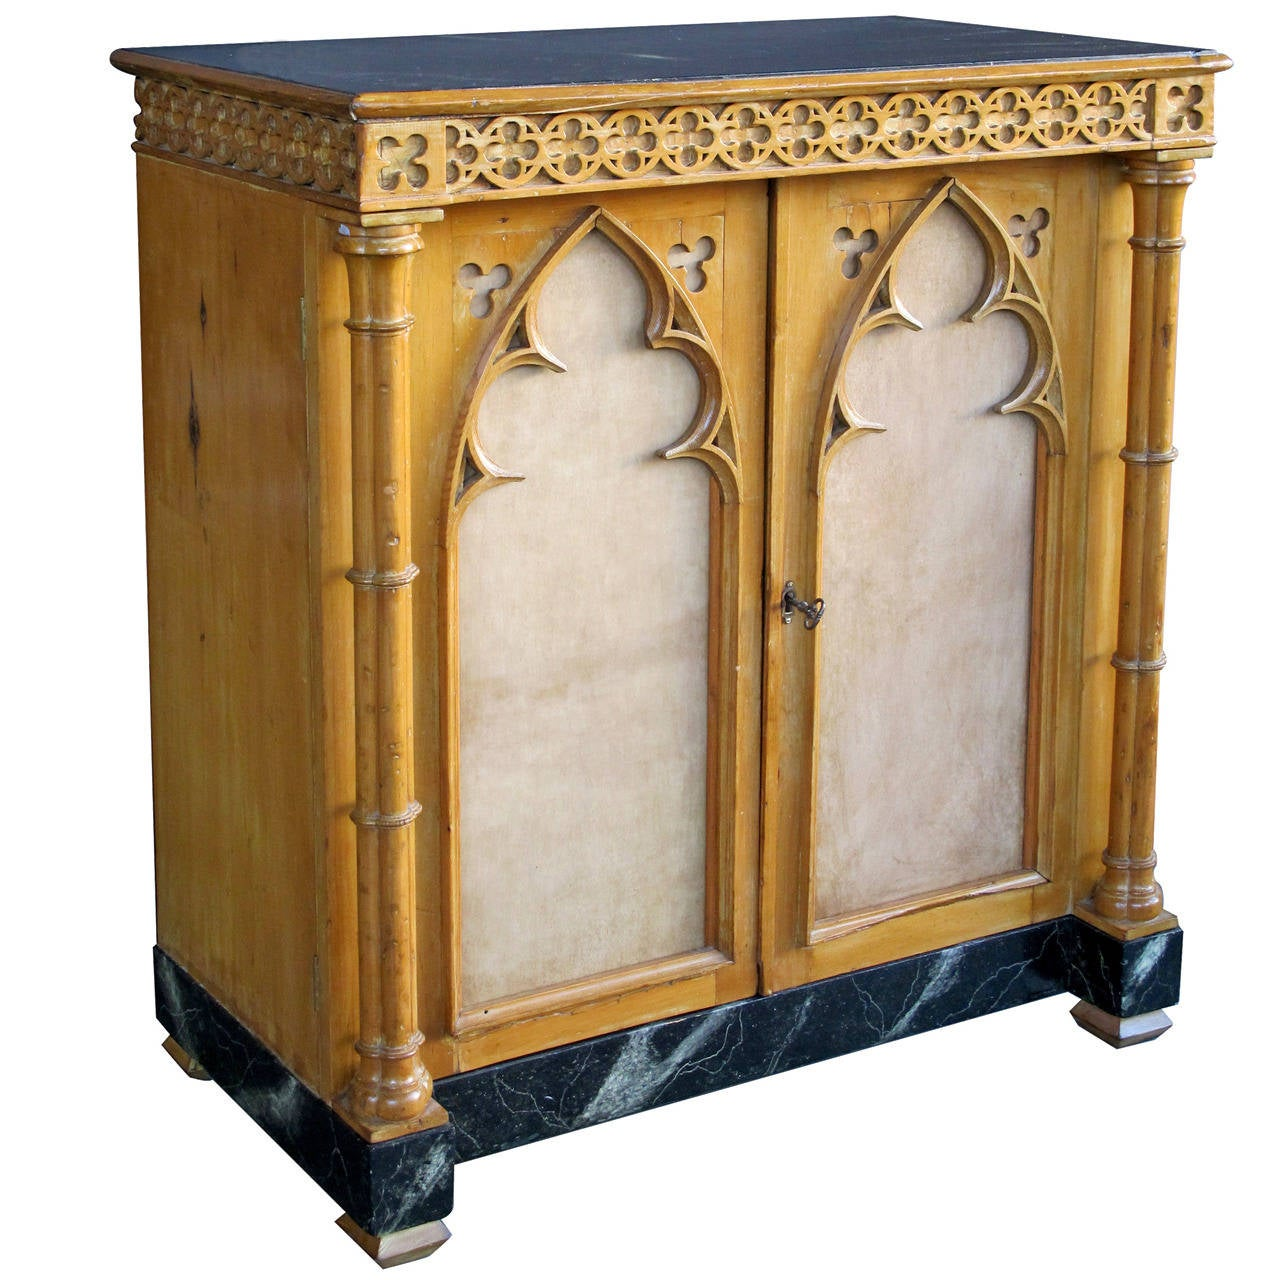 Whimsical English Gothic Revival Two Door Pine Cabinet